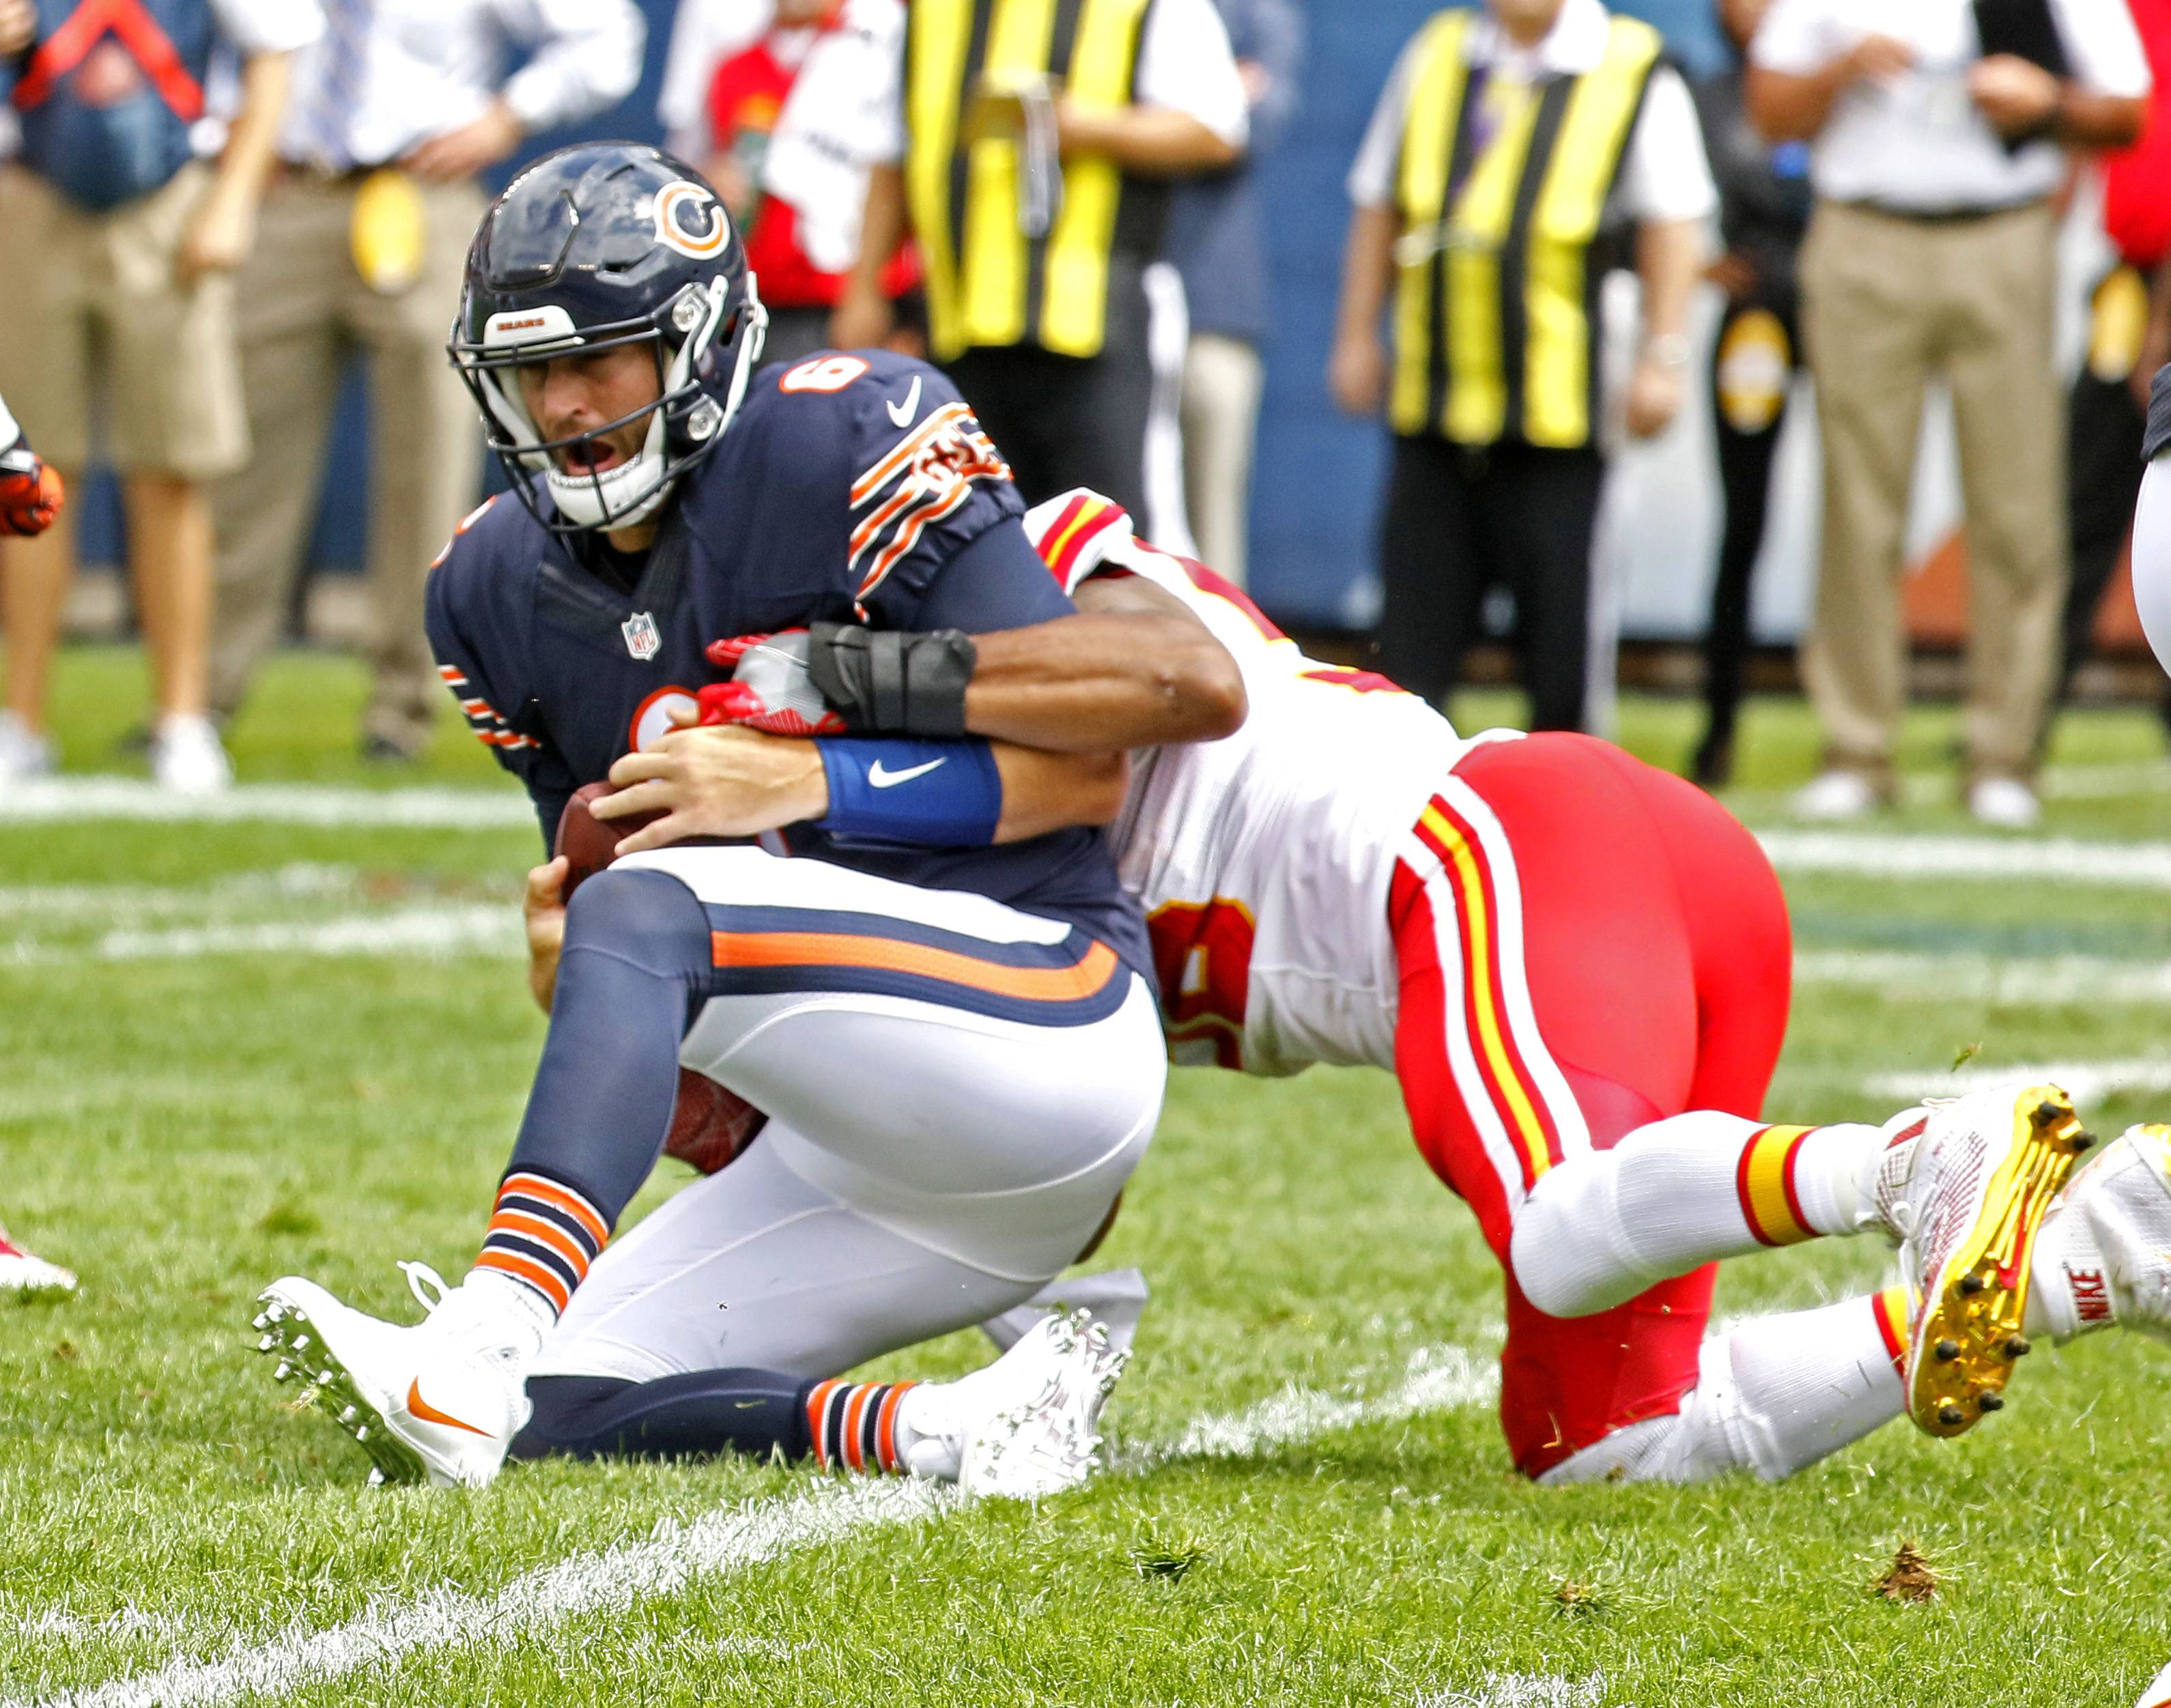 Chicago Bears quarterback Jay Cutler is sacked by the Kansas City Chiefs Derrick Johnson during a preseason game Saturday at Soldier Field.